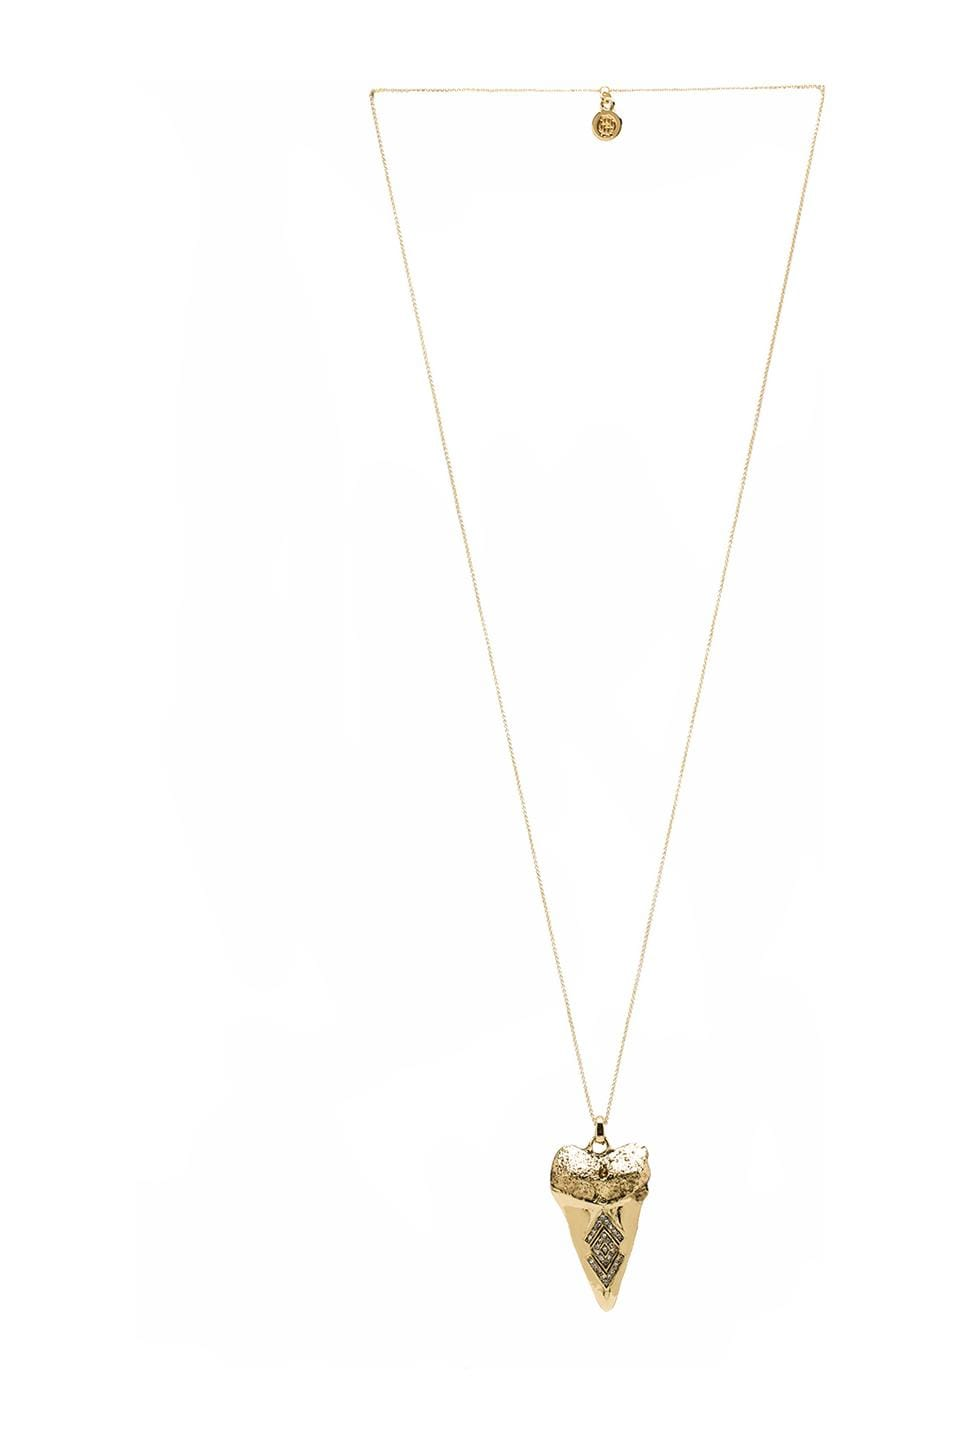 House of Harlow 1960 House of Harlow Tribal Tooth Pendant Necklace in Gold